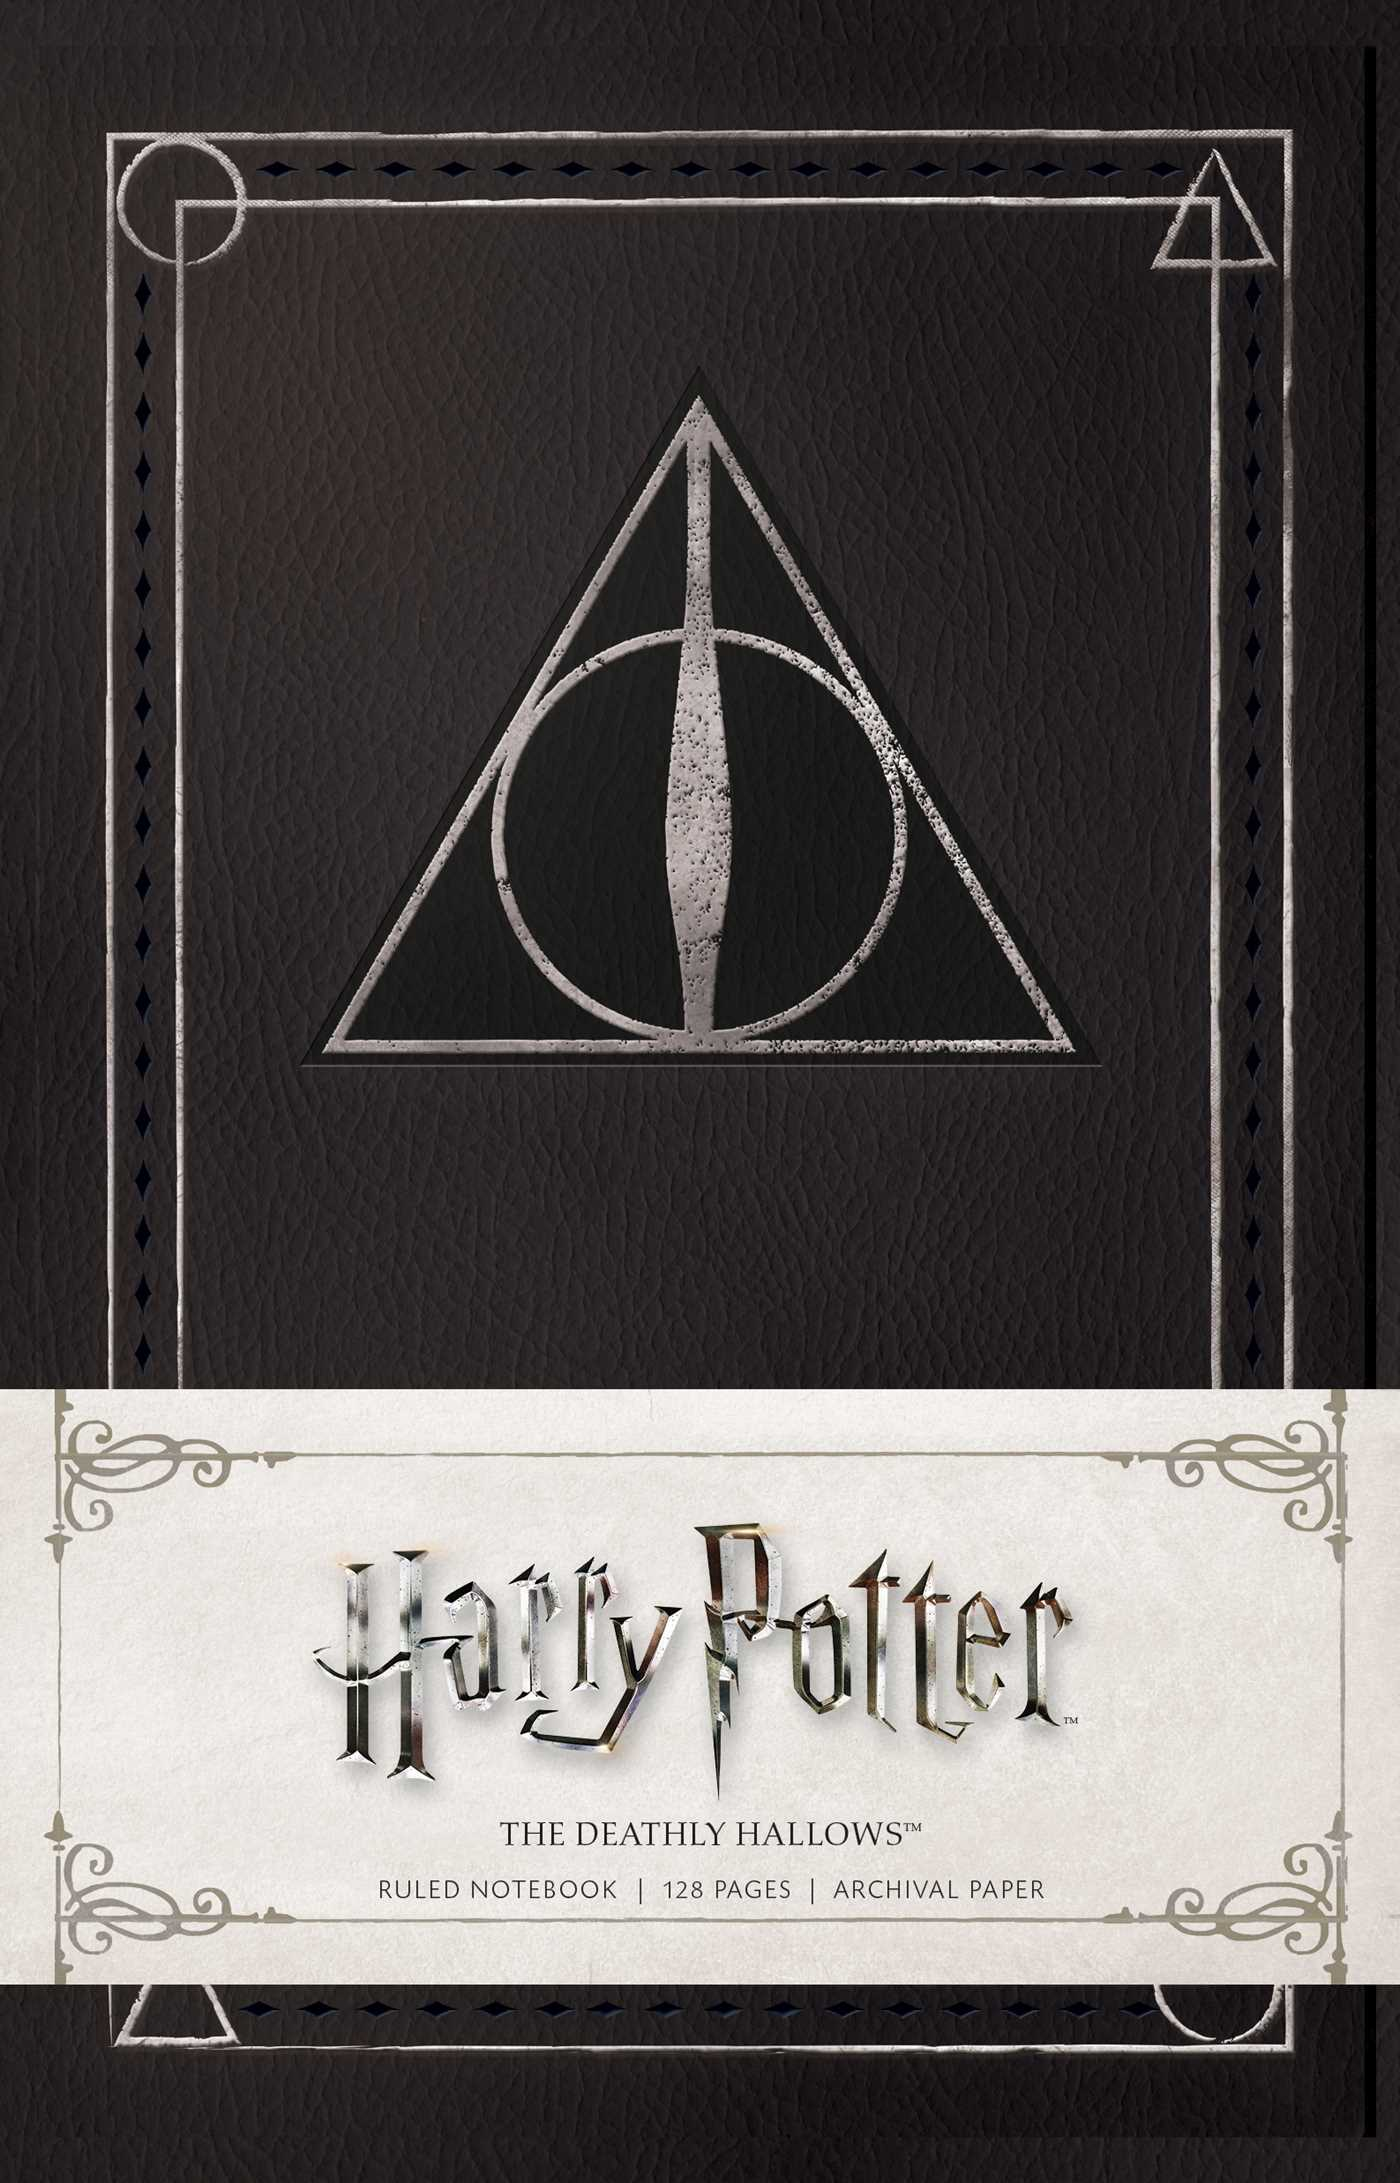 Harry potter the deathly hallows ruled notebook book by insight harry potter the deathly hallows ruled notebook 9781683832706 hr biocorpaavc